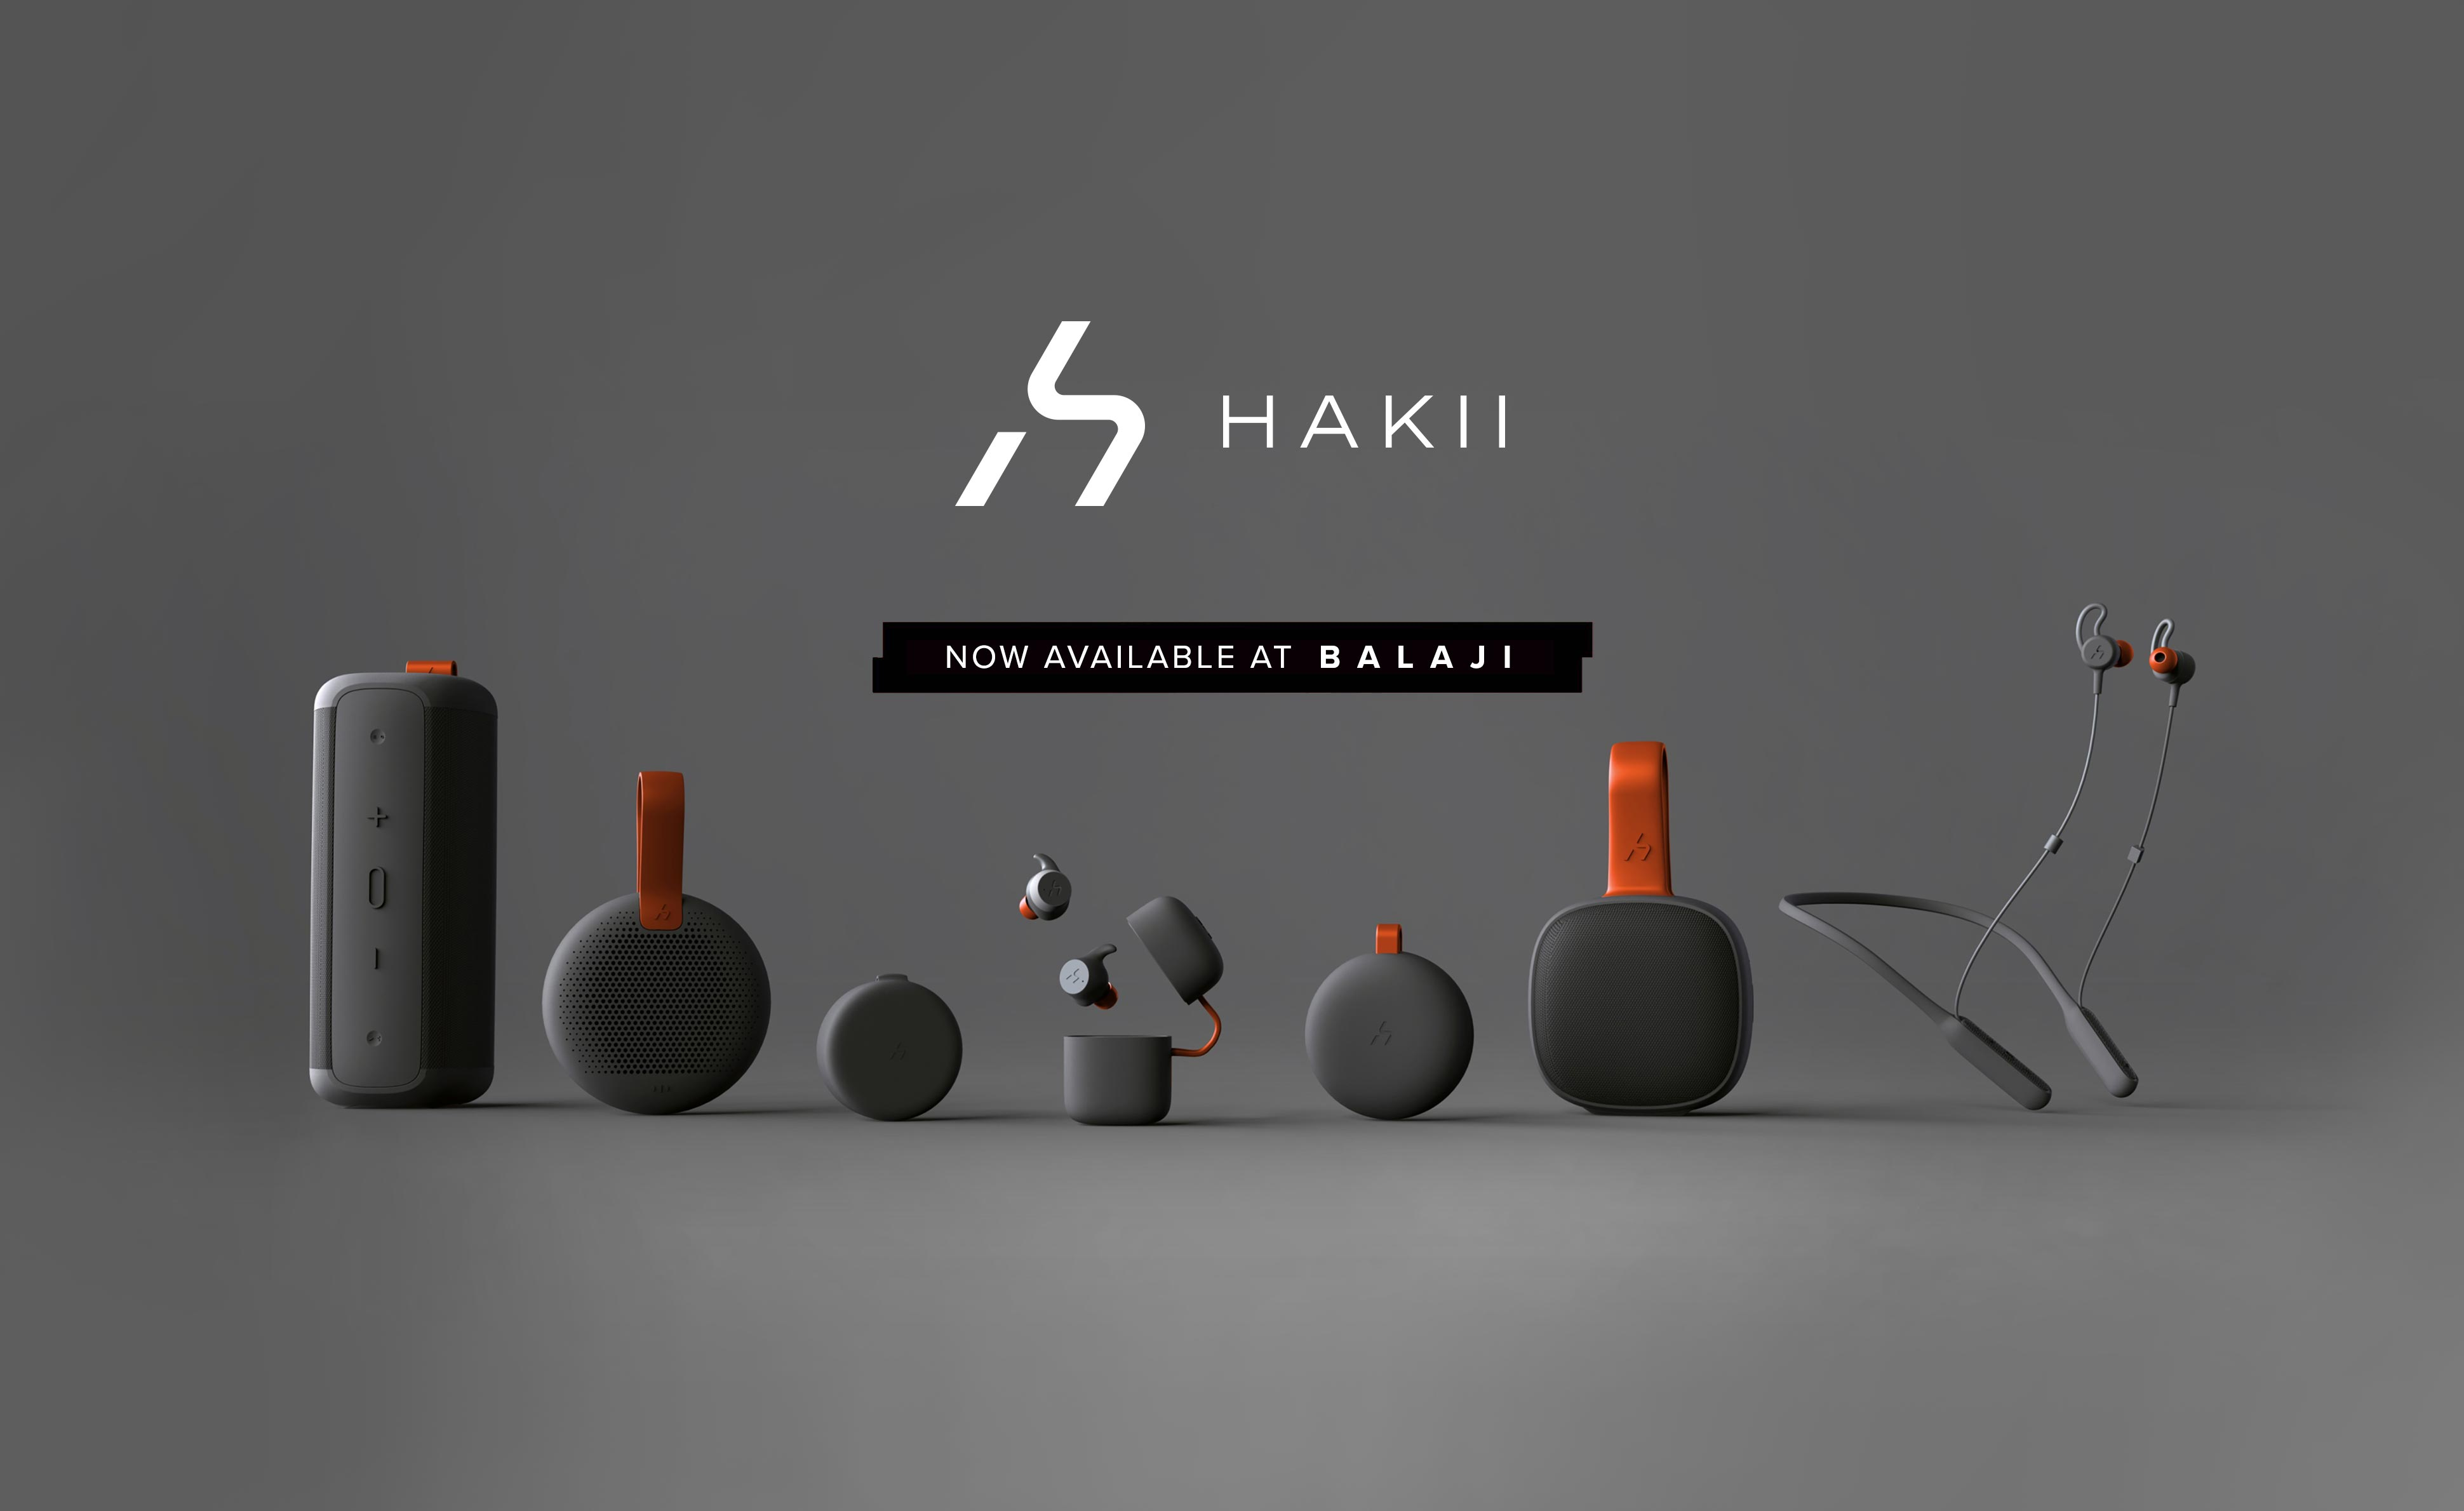 HAKII True Wireless Speakers and Headphones Now Available at BALAJI